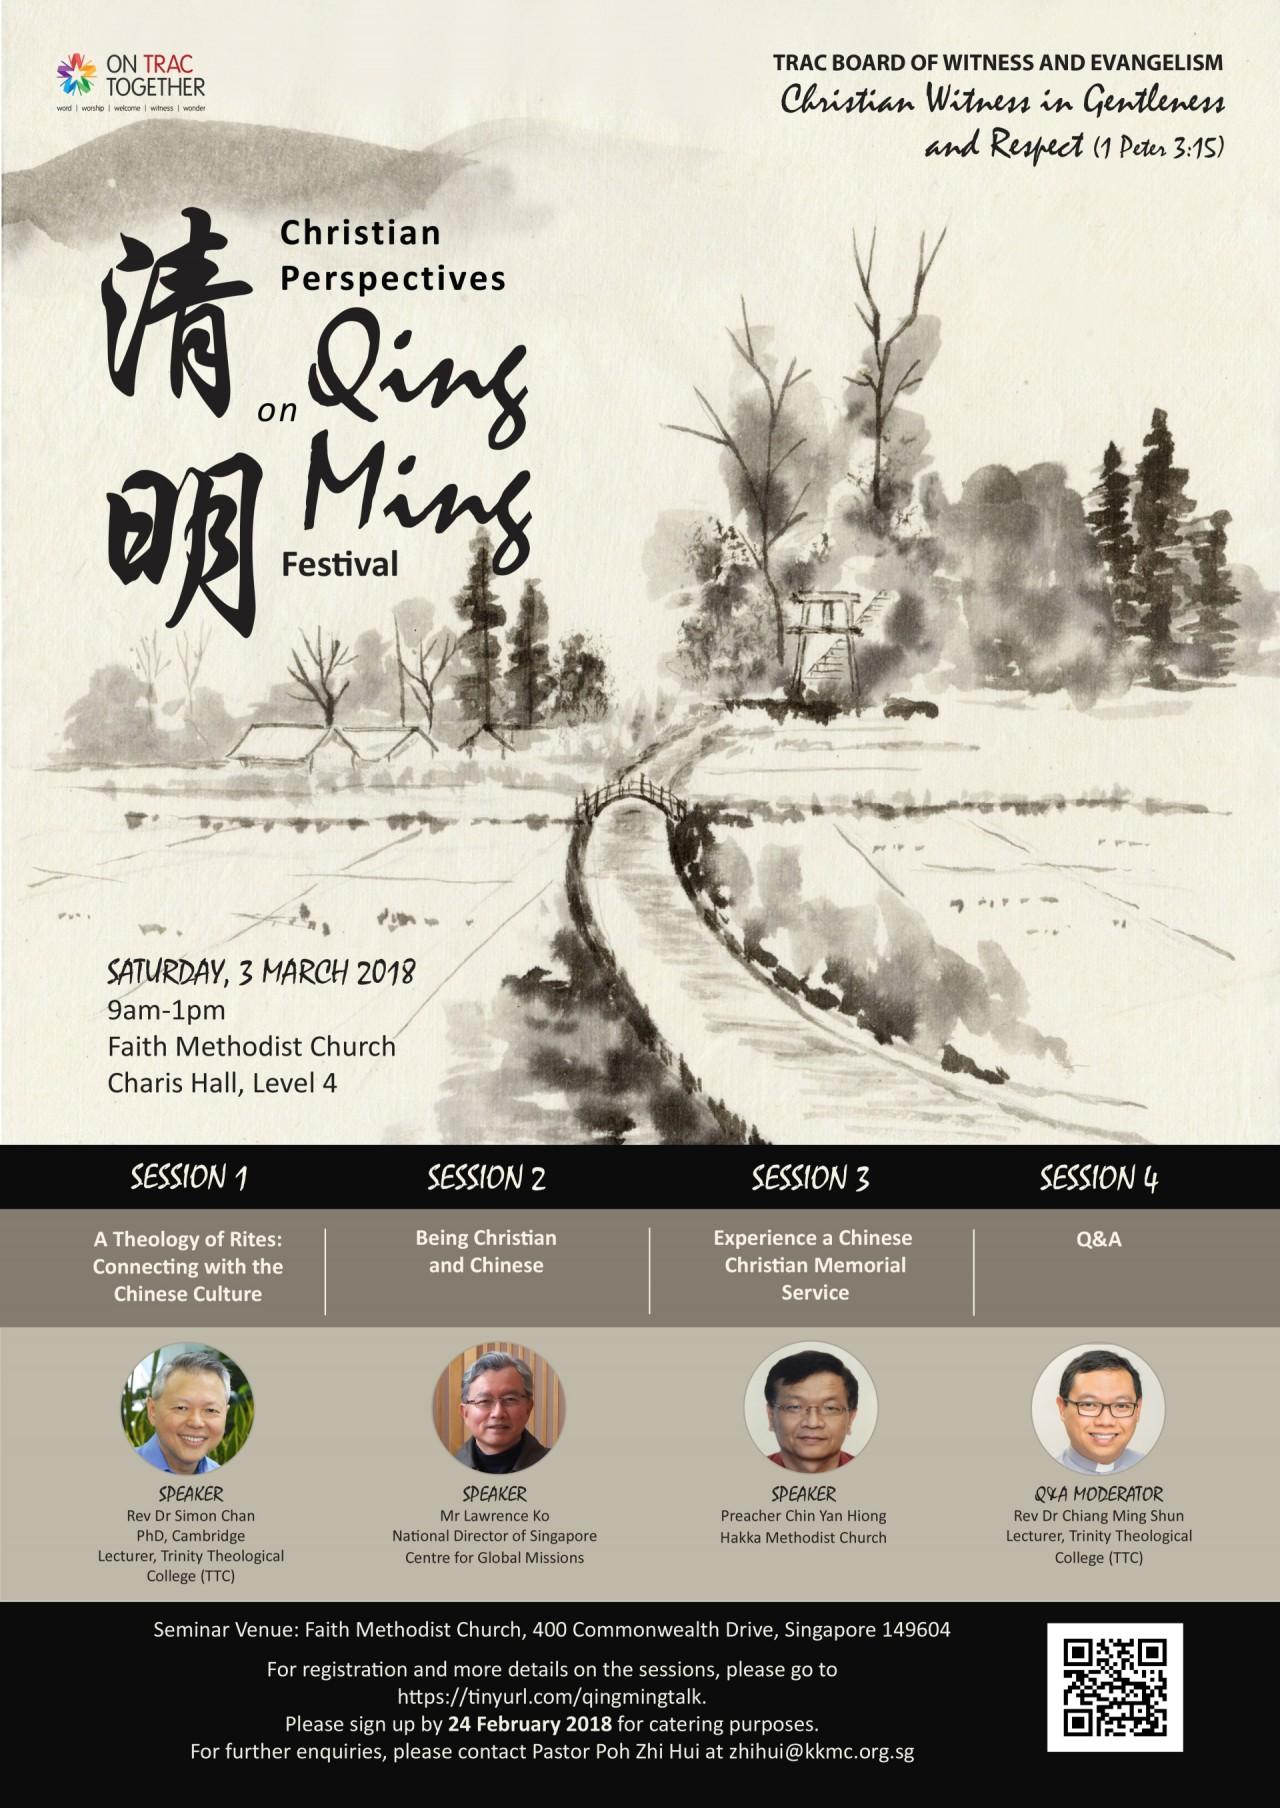 Christian Perspectives on Qing Ming Festival